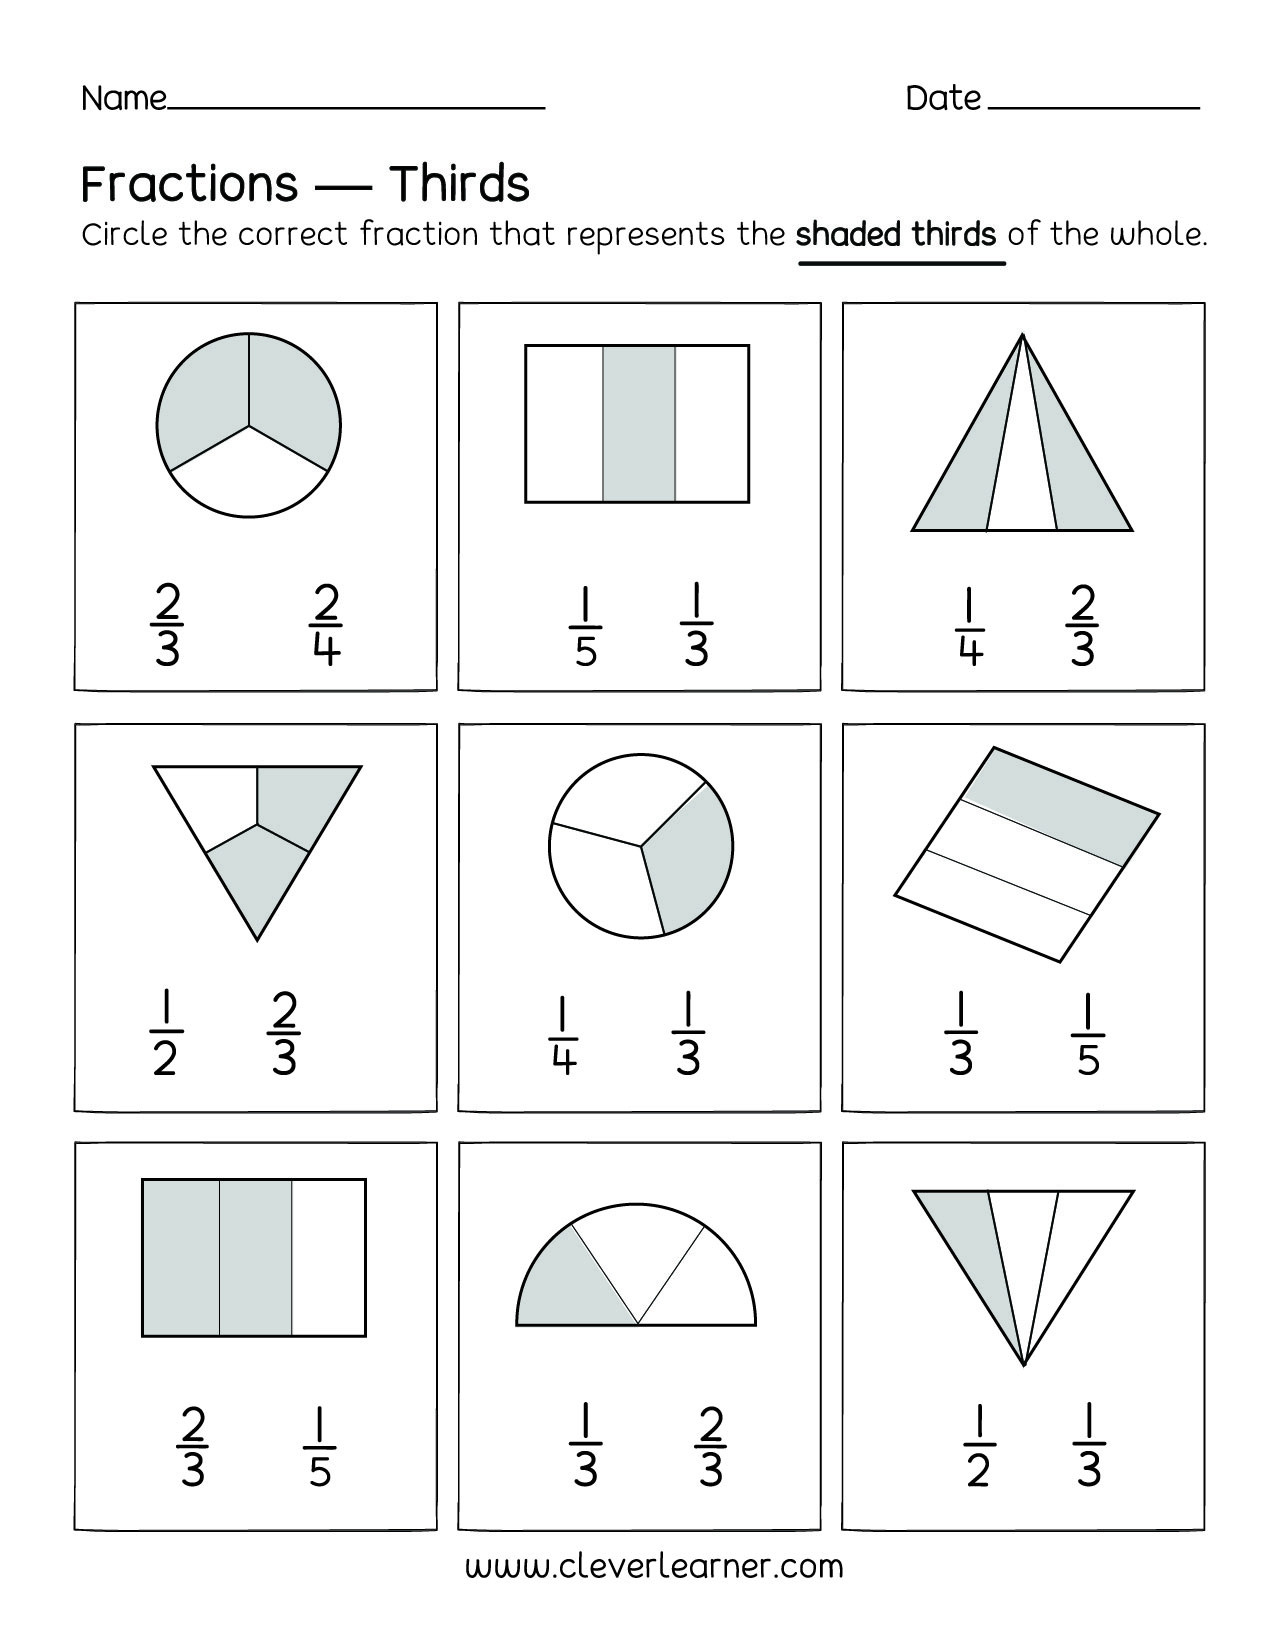 First Grade Fractions Worksheets Fun Activity Fractions Thirds Worksheets for Children